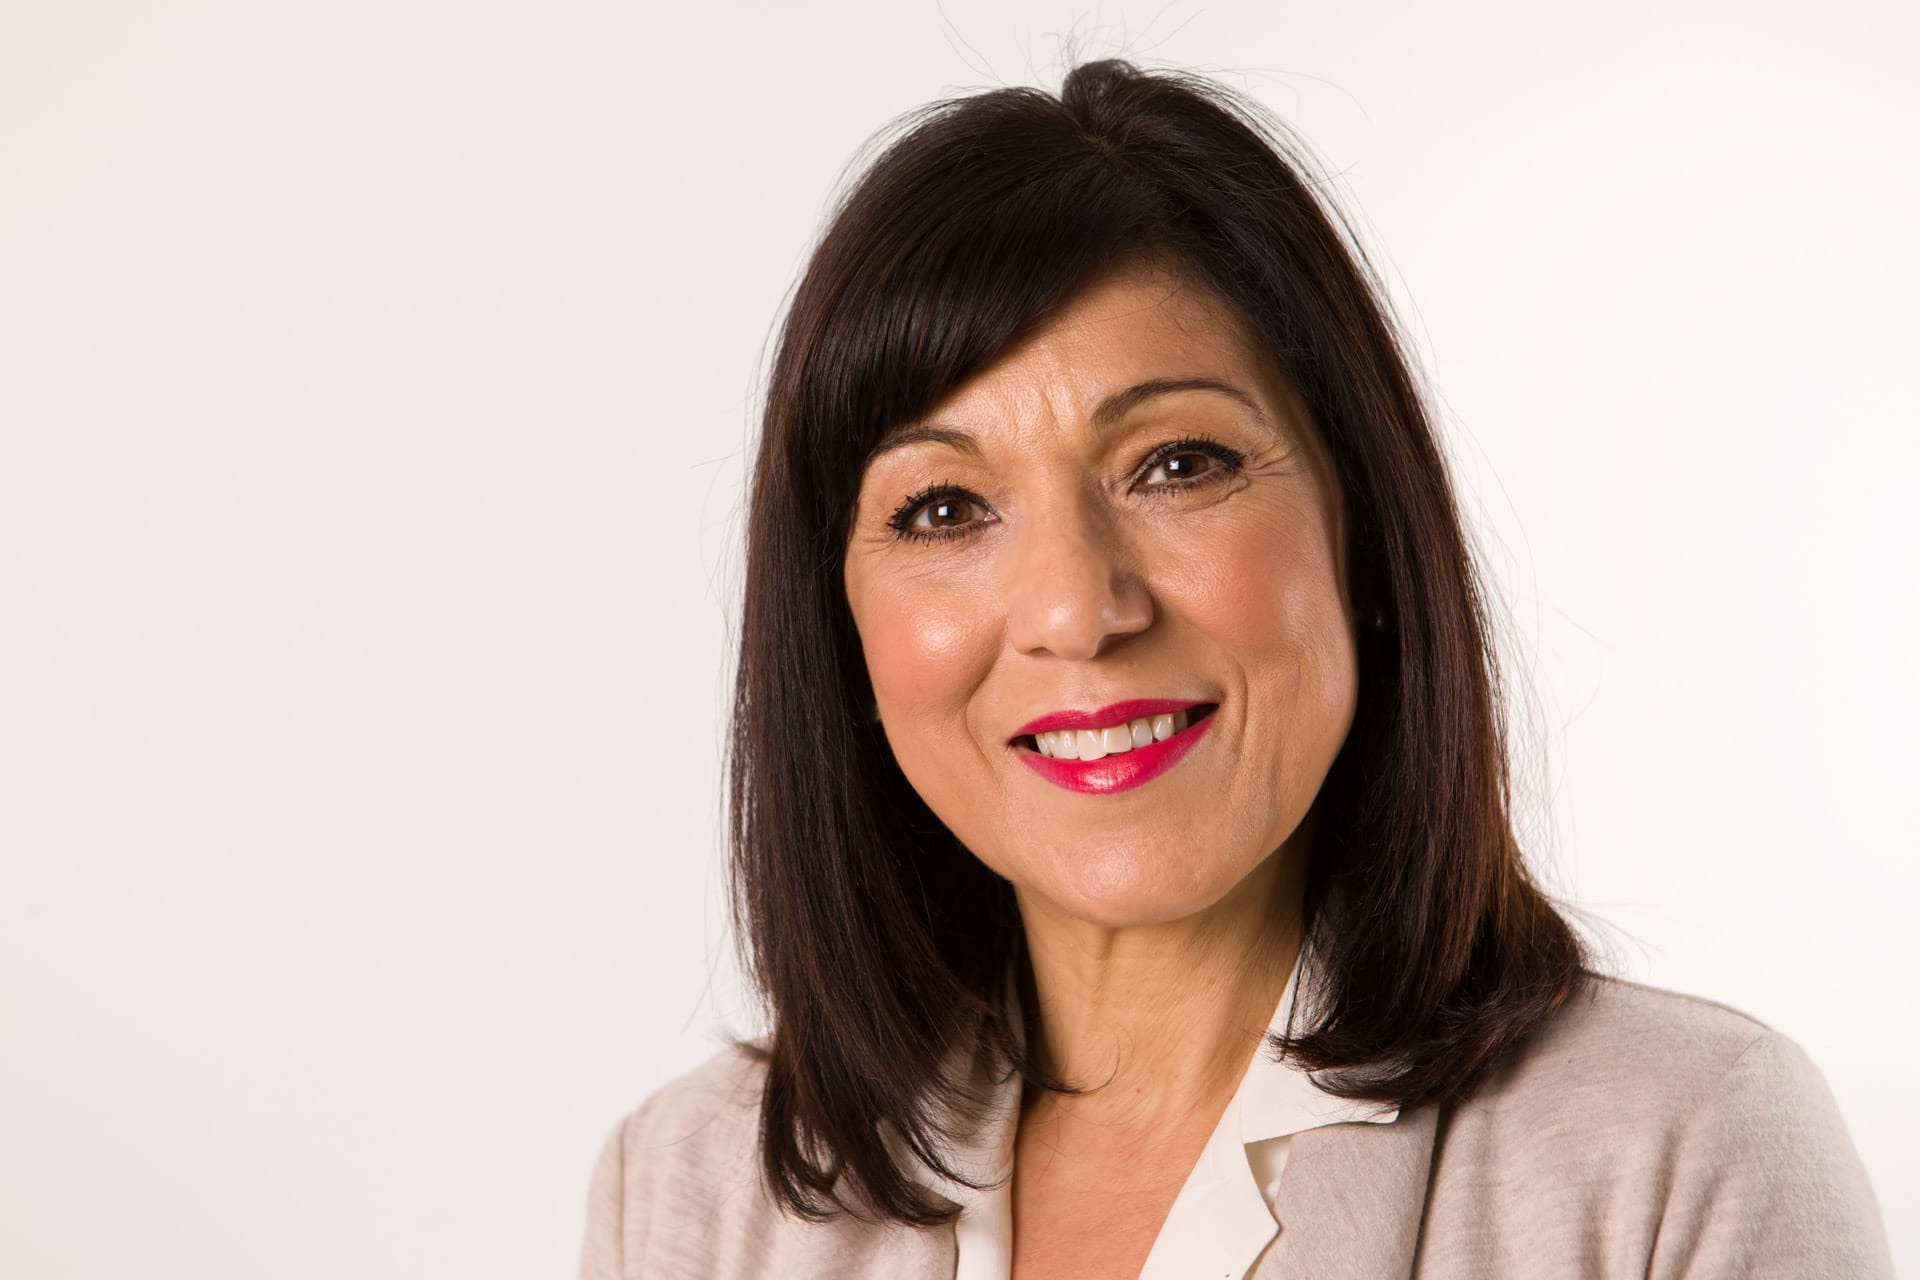 professional corporate portrait head shot of mature dark haired lady with red lipstick